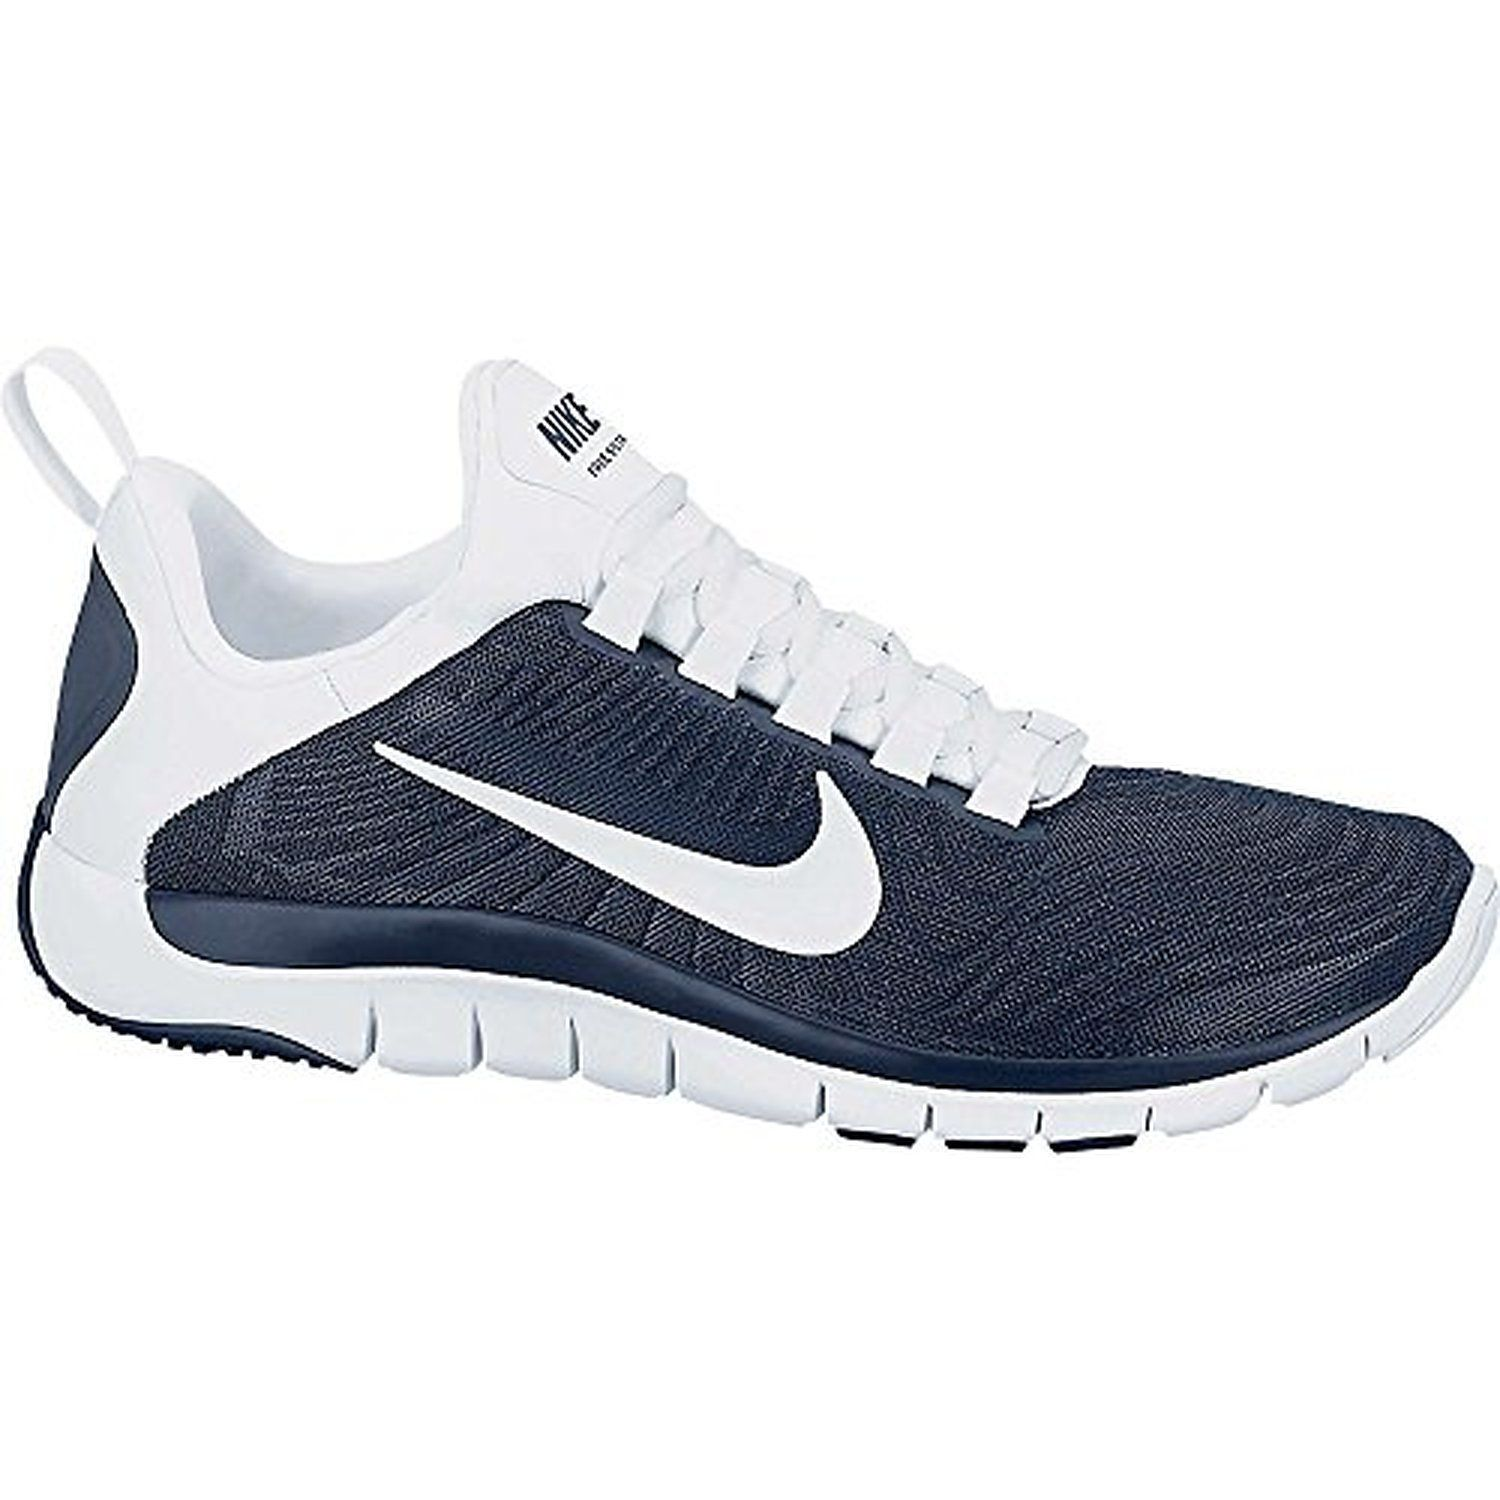 1af62283e7b05 buy nike free trainer 5.0 mens training shoes black d7afc 0a1f4  where to  buy cool top 10 best nike free trainer 5.0 models reviewing your choices  8293f